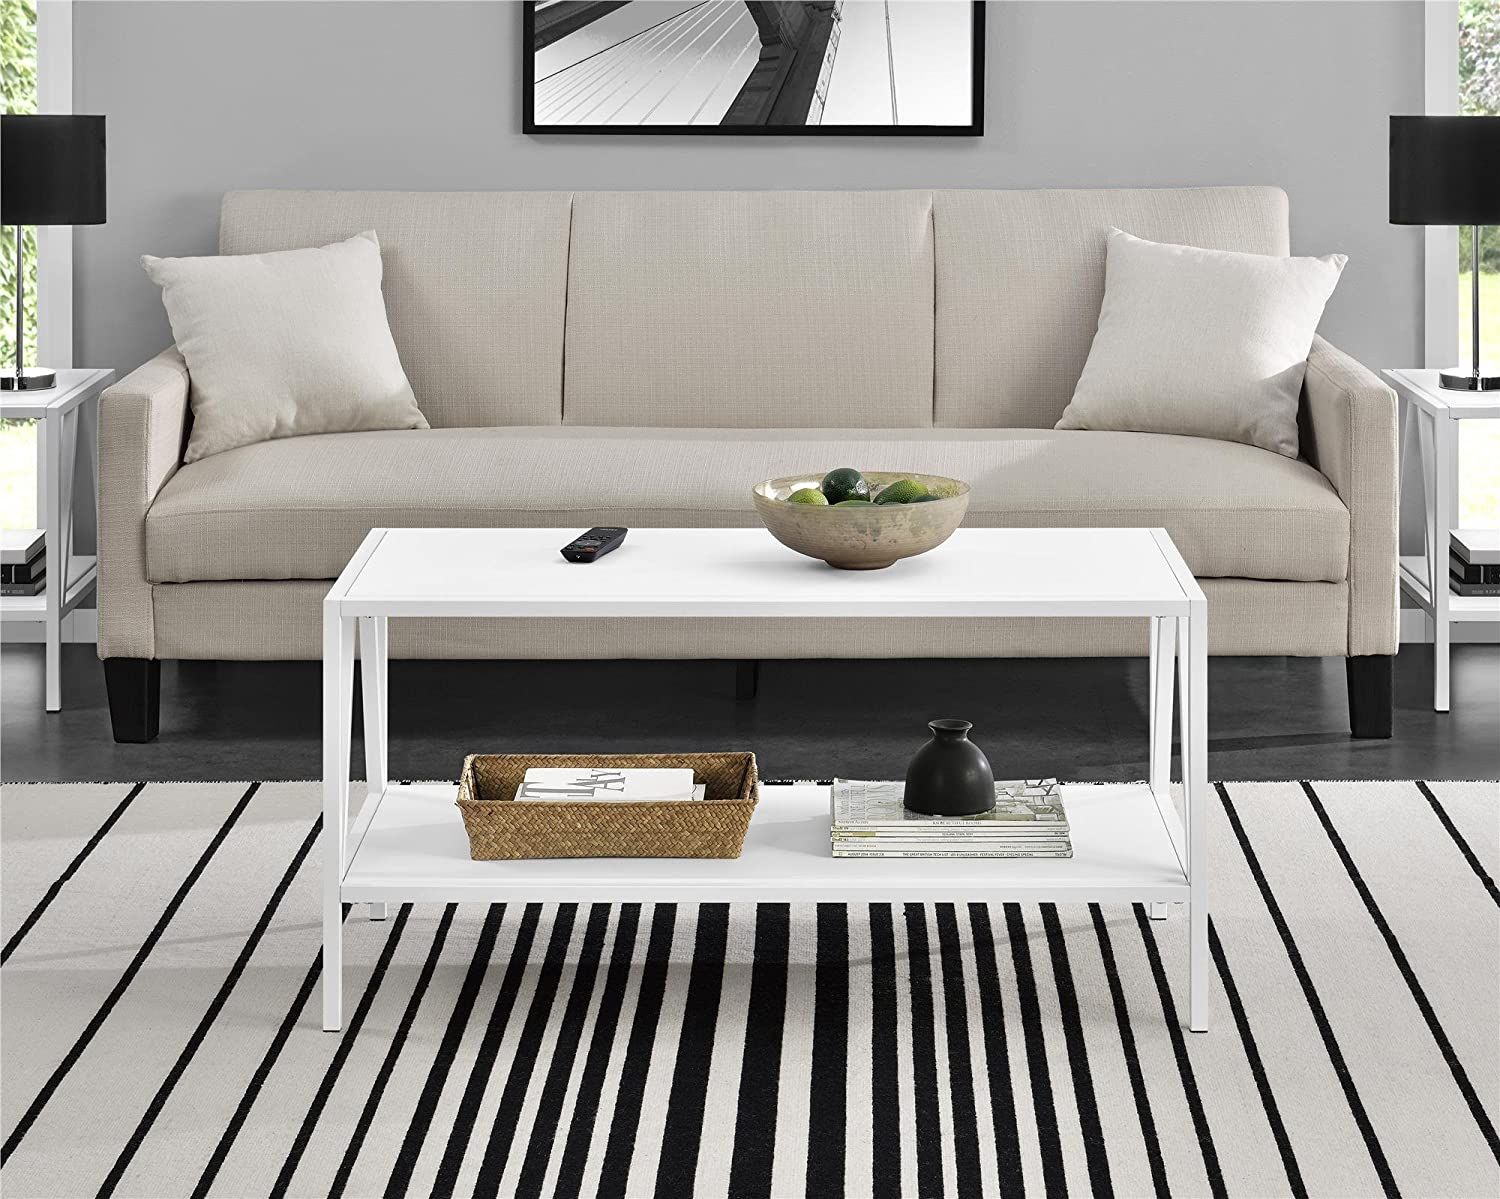 Ameriwood Home Avondale Coffee Table, White